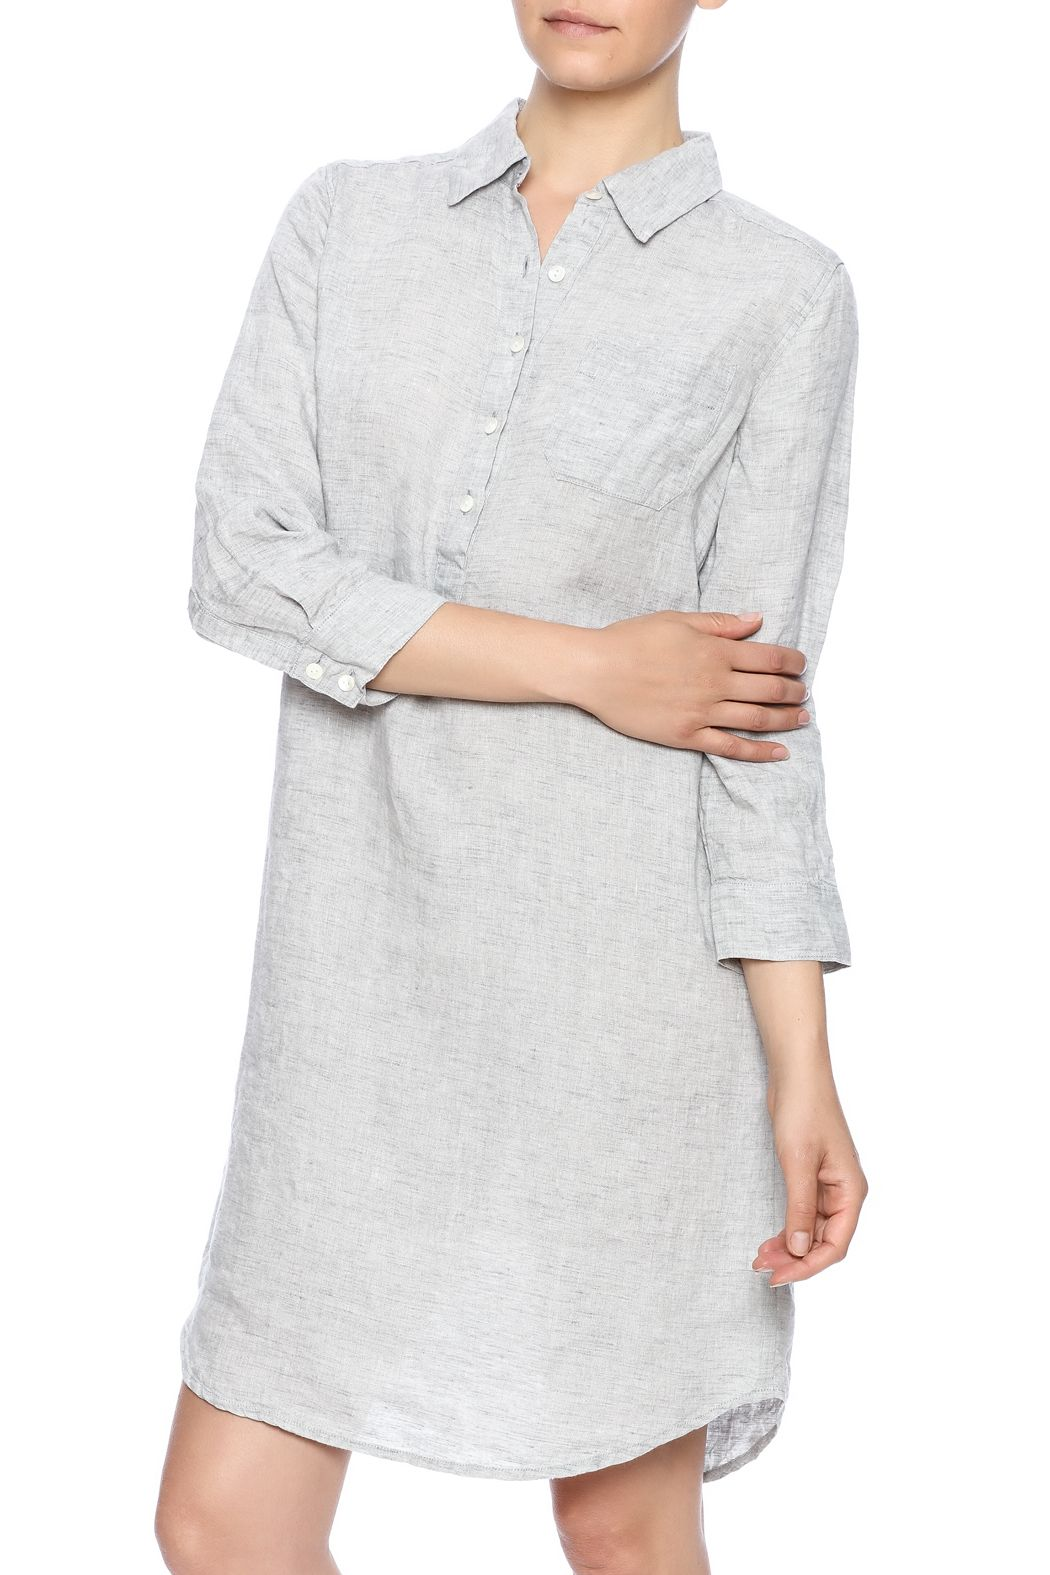 0f6189773ea Classic shirt dress in washed linen with 3 4 sleeves